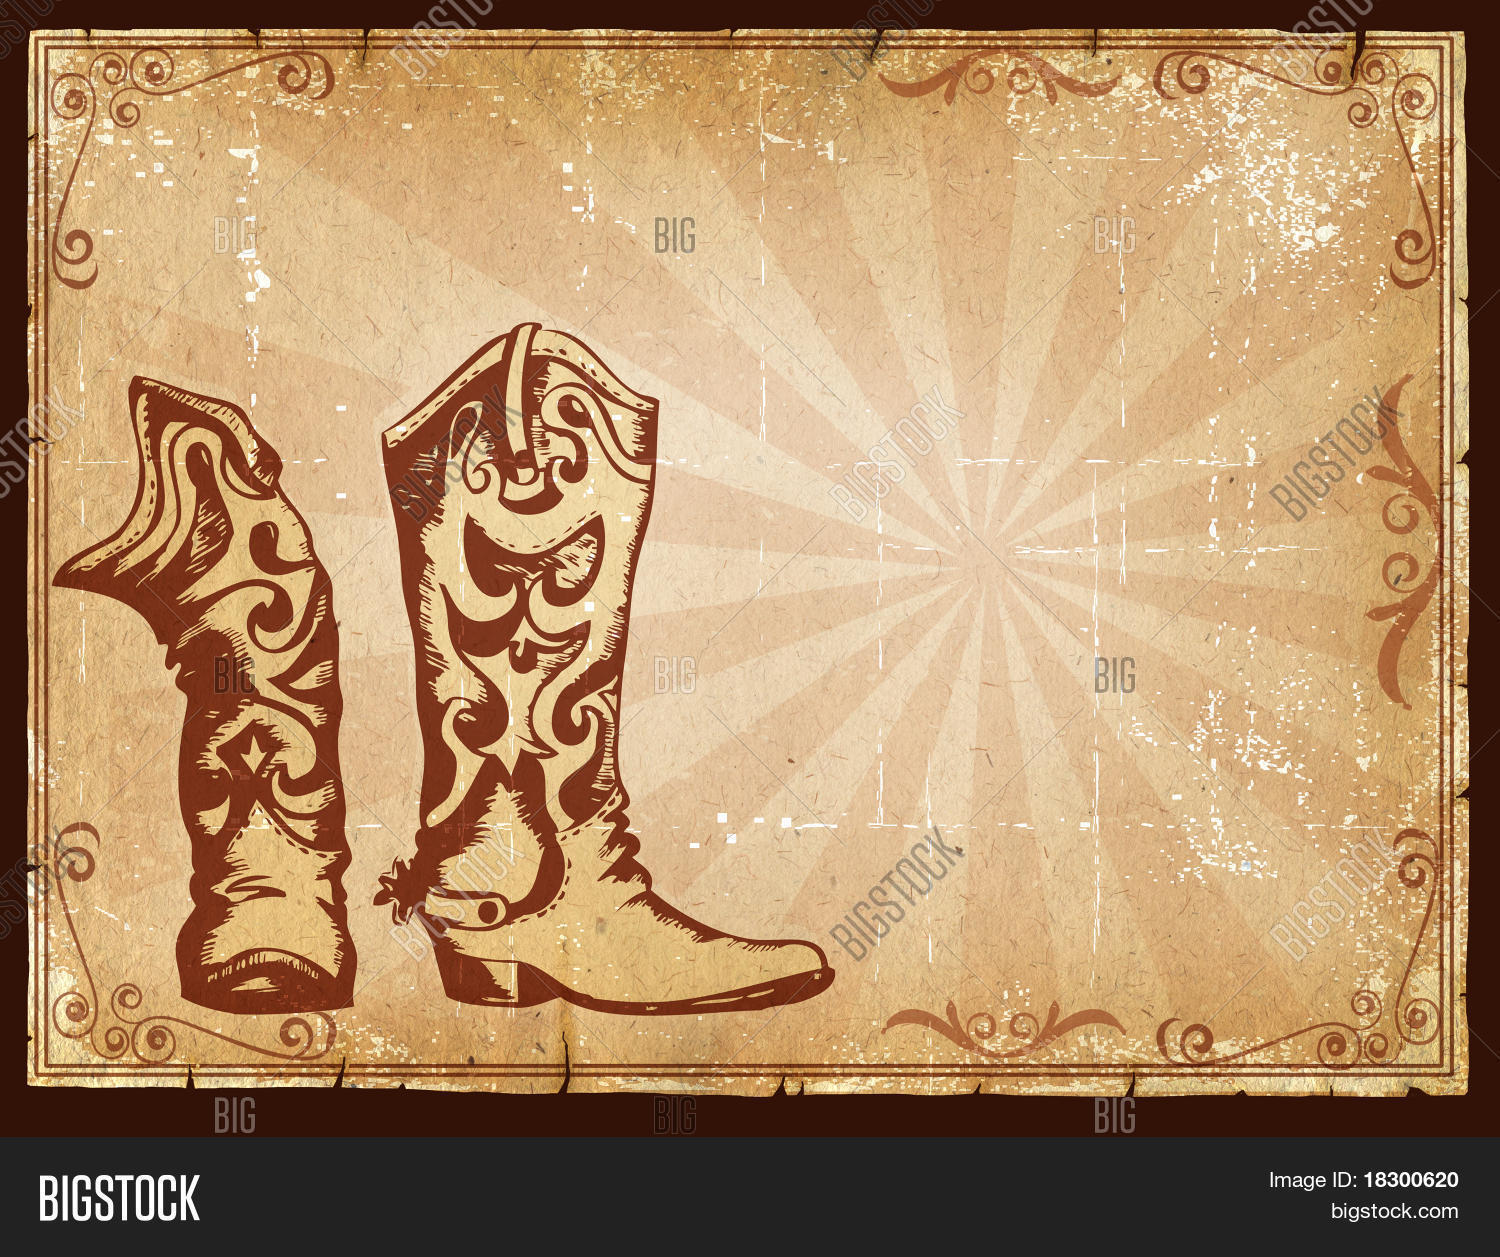 Cowboy Old Paper Image & Photo (Free Trial) | Bigstock